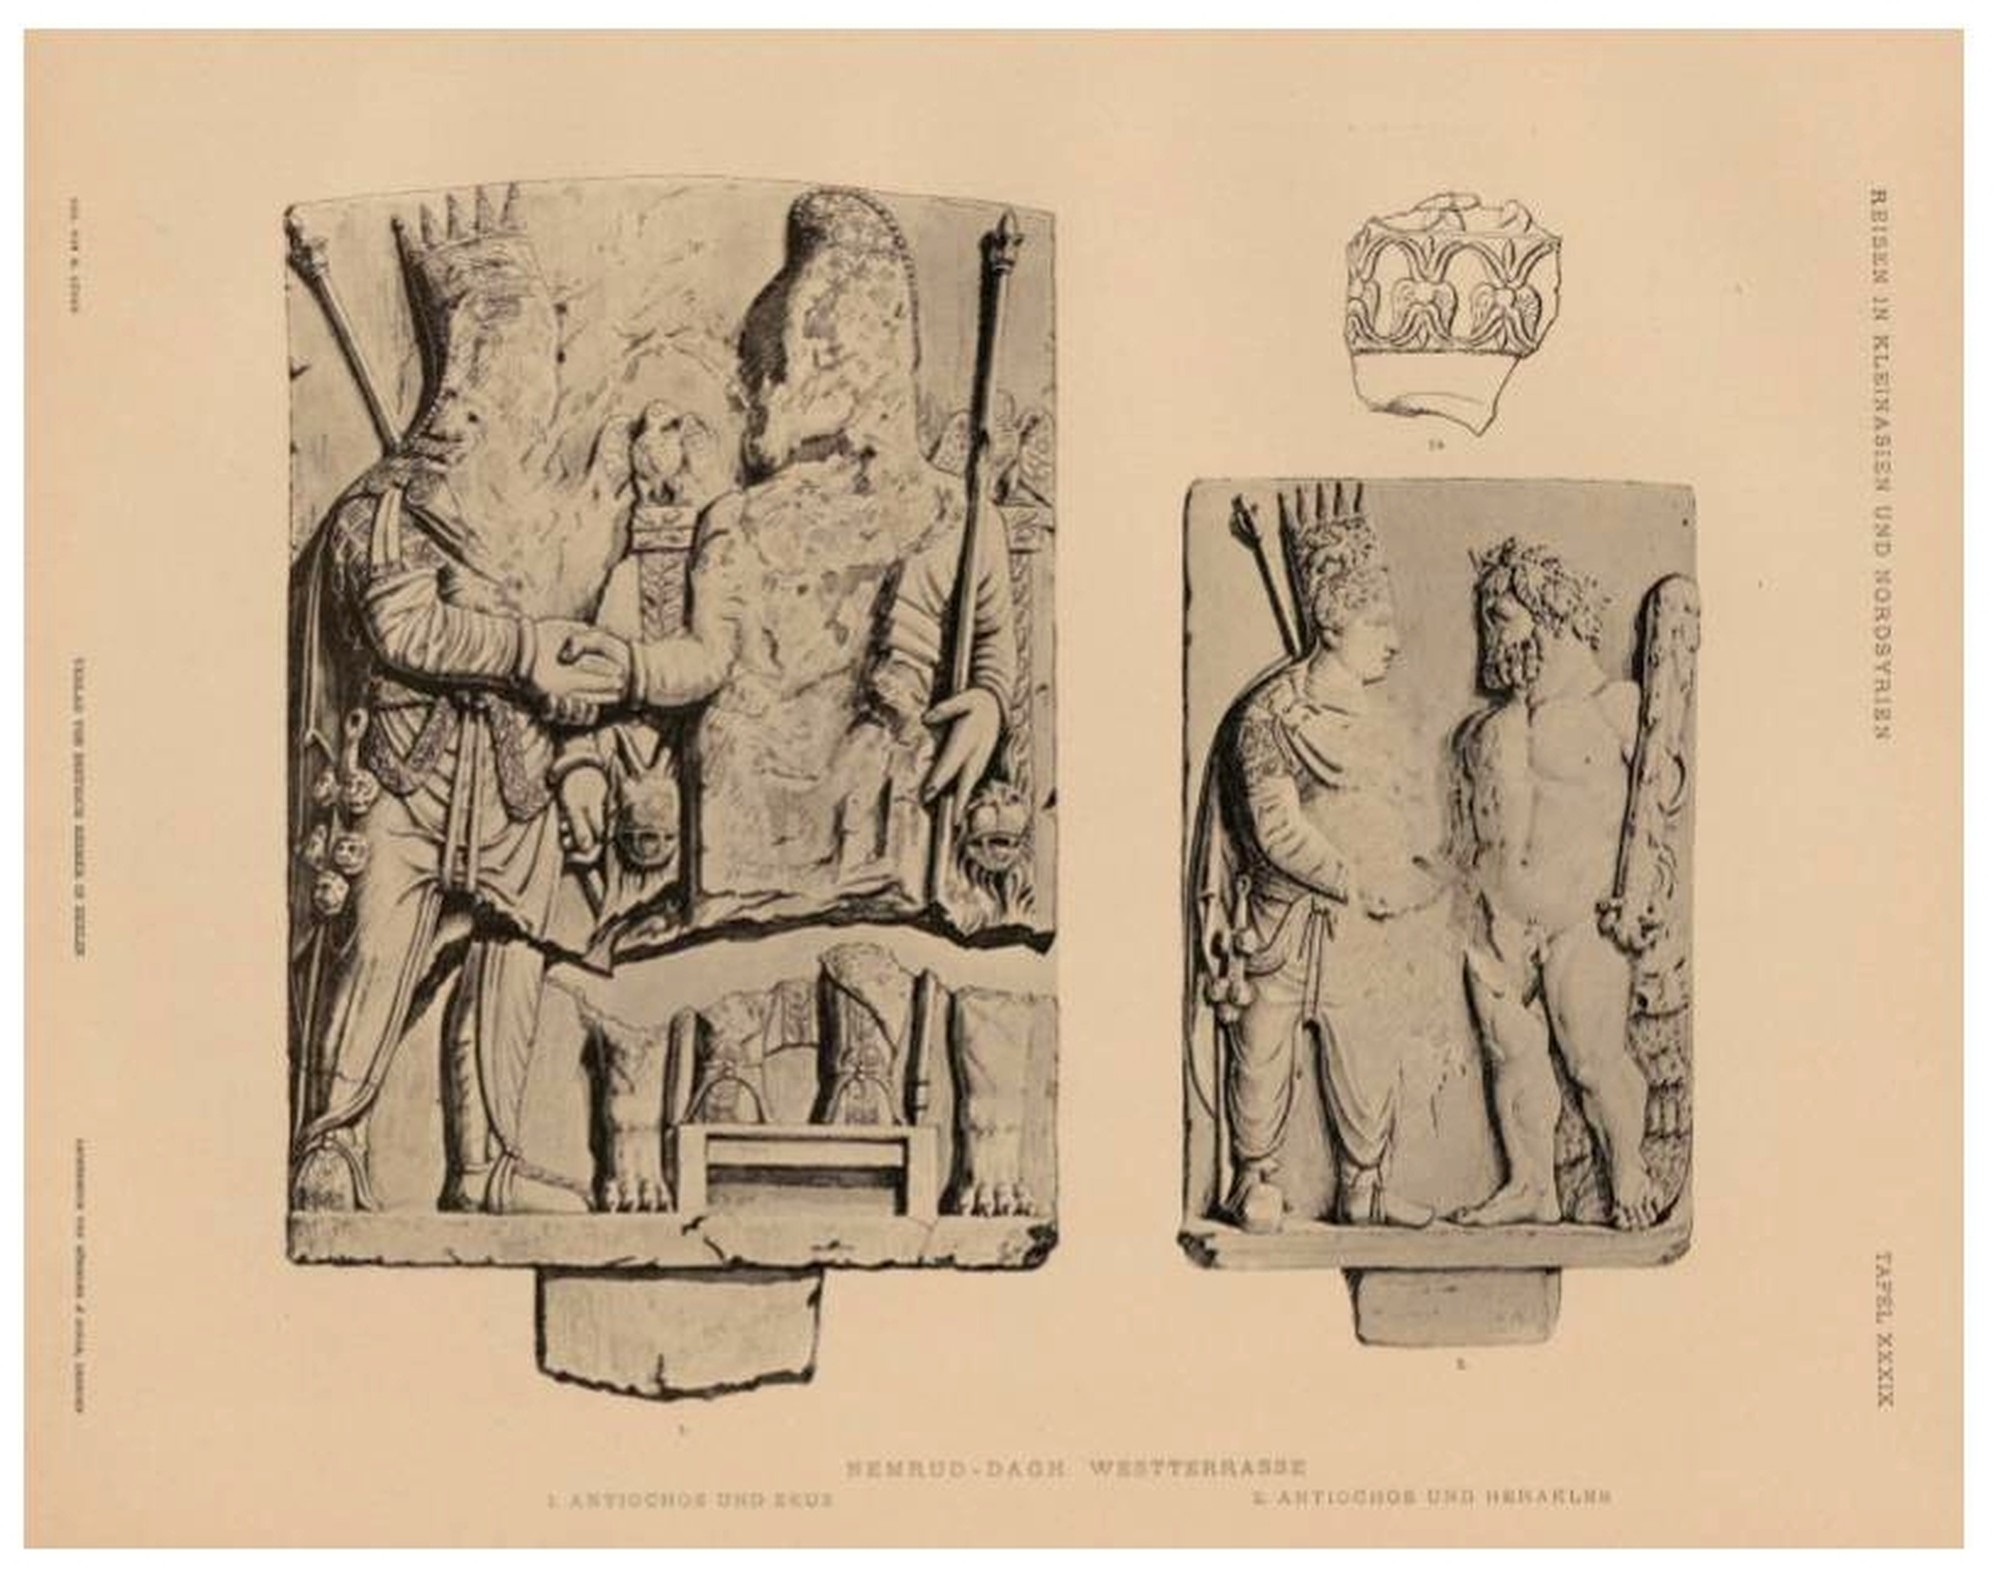 Reliefs of dexiosis - Antiochus shaking hands with Zeus and Heracles, West Terrace on Mount Nemrut - from Humann, Carl i Puchstein, Otto,